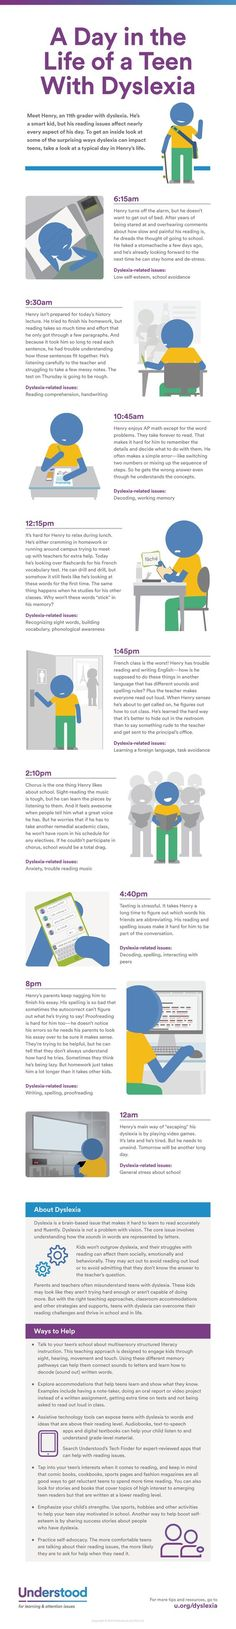 This is a fantastic description of the struggle! For teenagers with dyslexia, every class can be a struggle because they all involve some aspect of reading and spelling. Use this visual guide to see how dyslexia can affect a high-schooler's daily life.